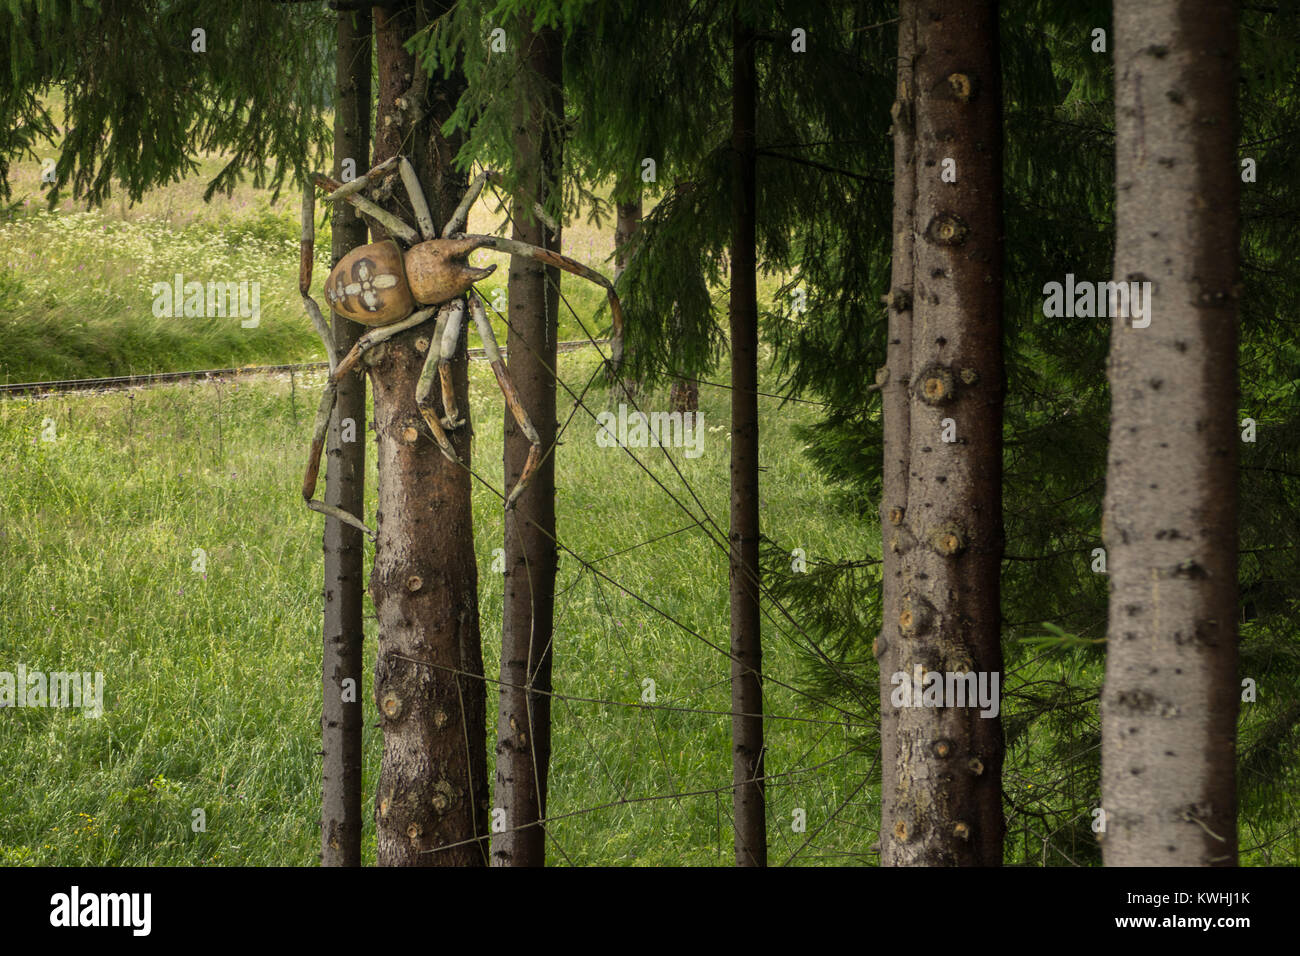 Gigantic spider on the tree - Stock Image